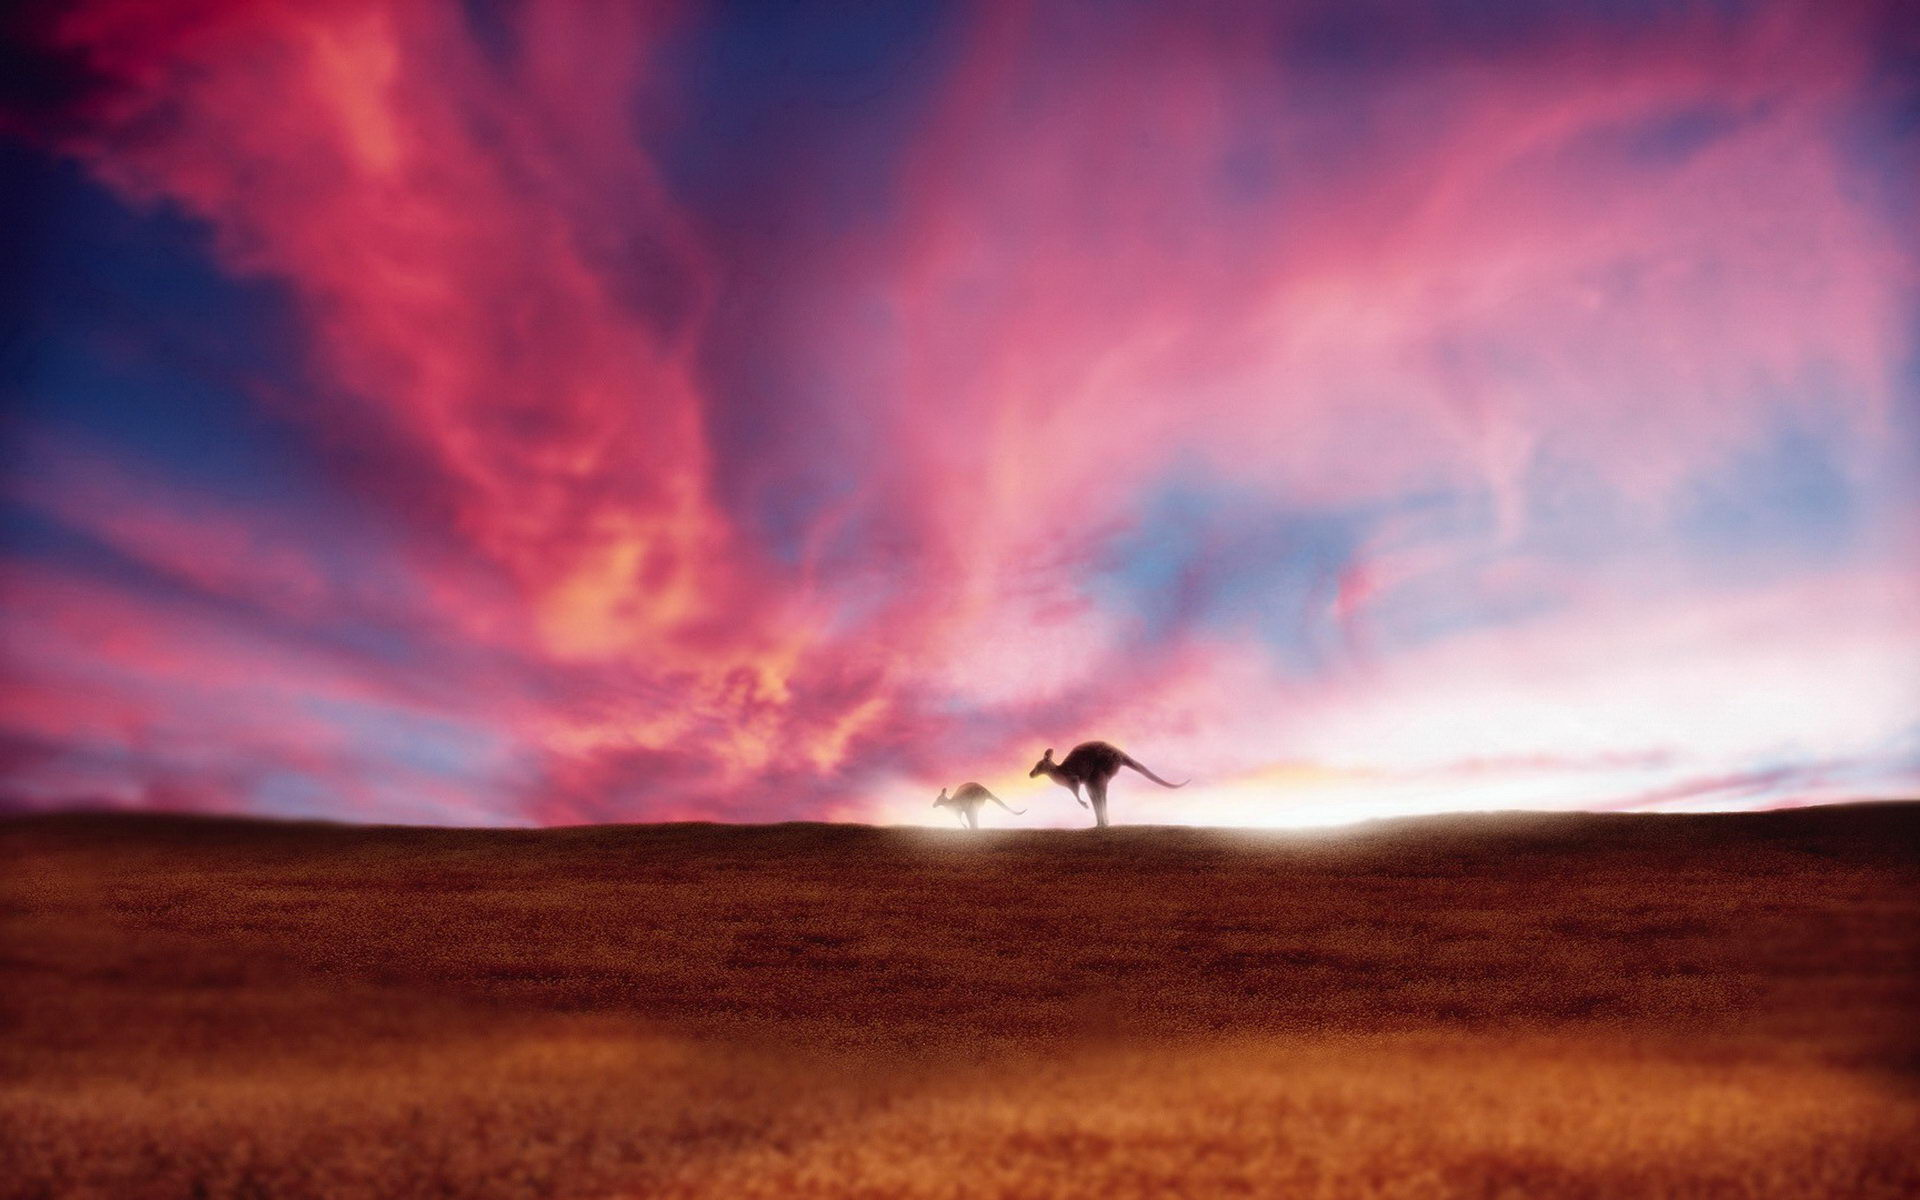 Free Download Bright Wallpapers, 26 Kangaroo 100% Quality HD Wallpapers